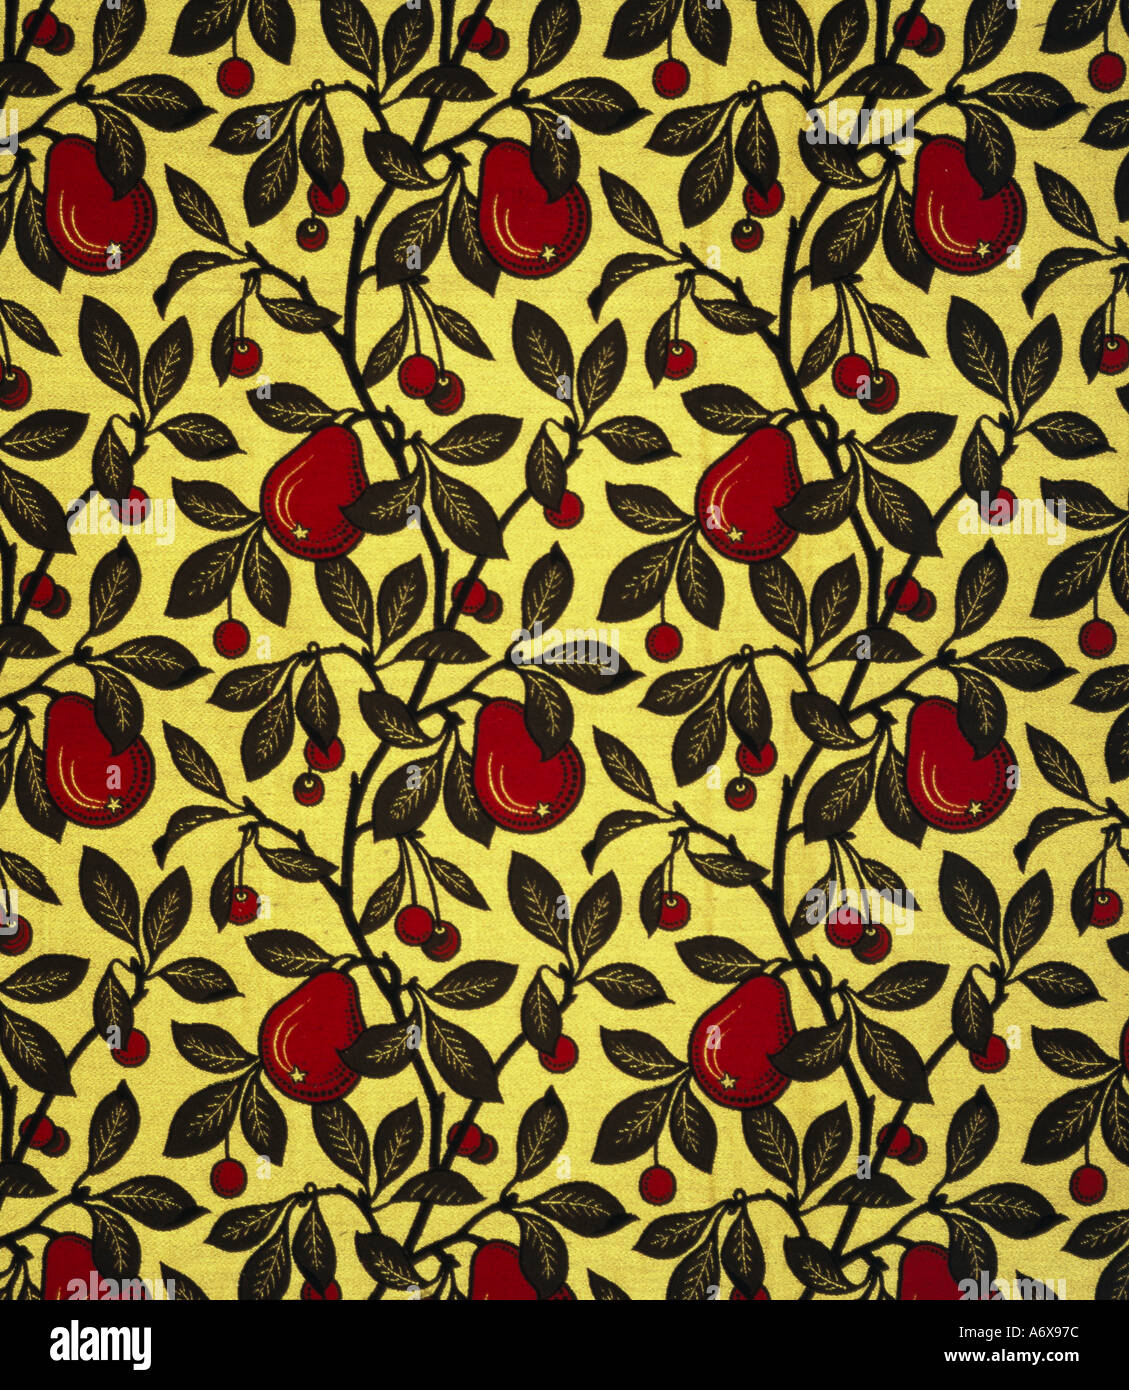 Pears and Cherries furnishing fabric by Bruce James Talbert. England, late 19th century. - Stock Image